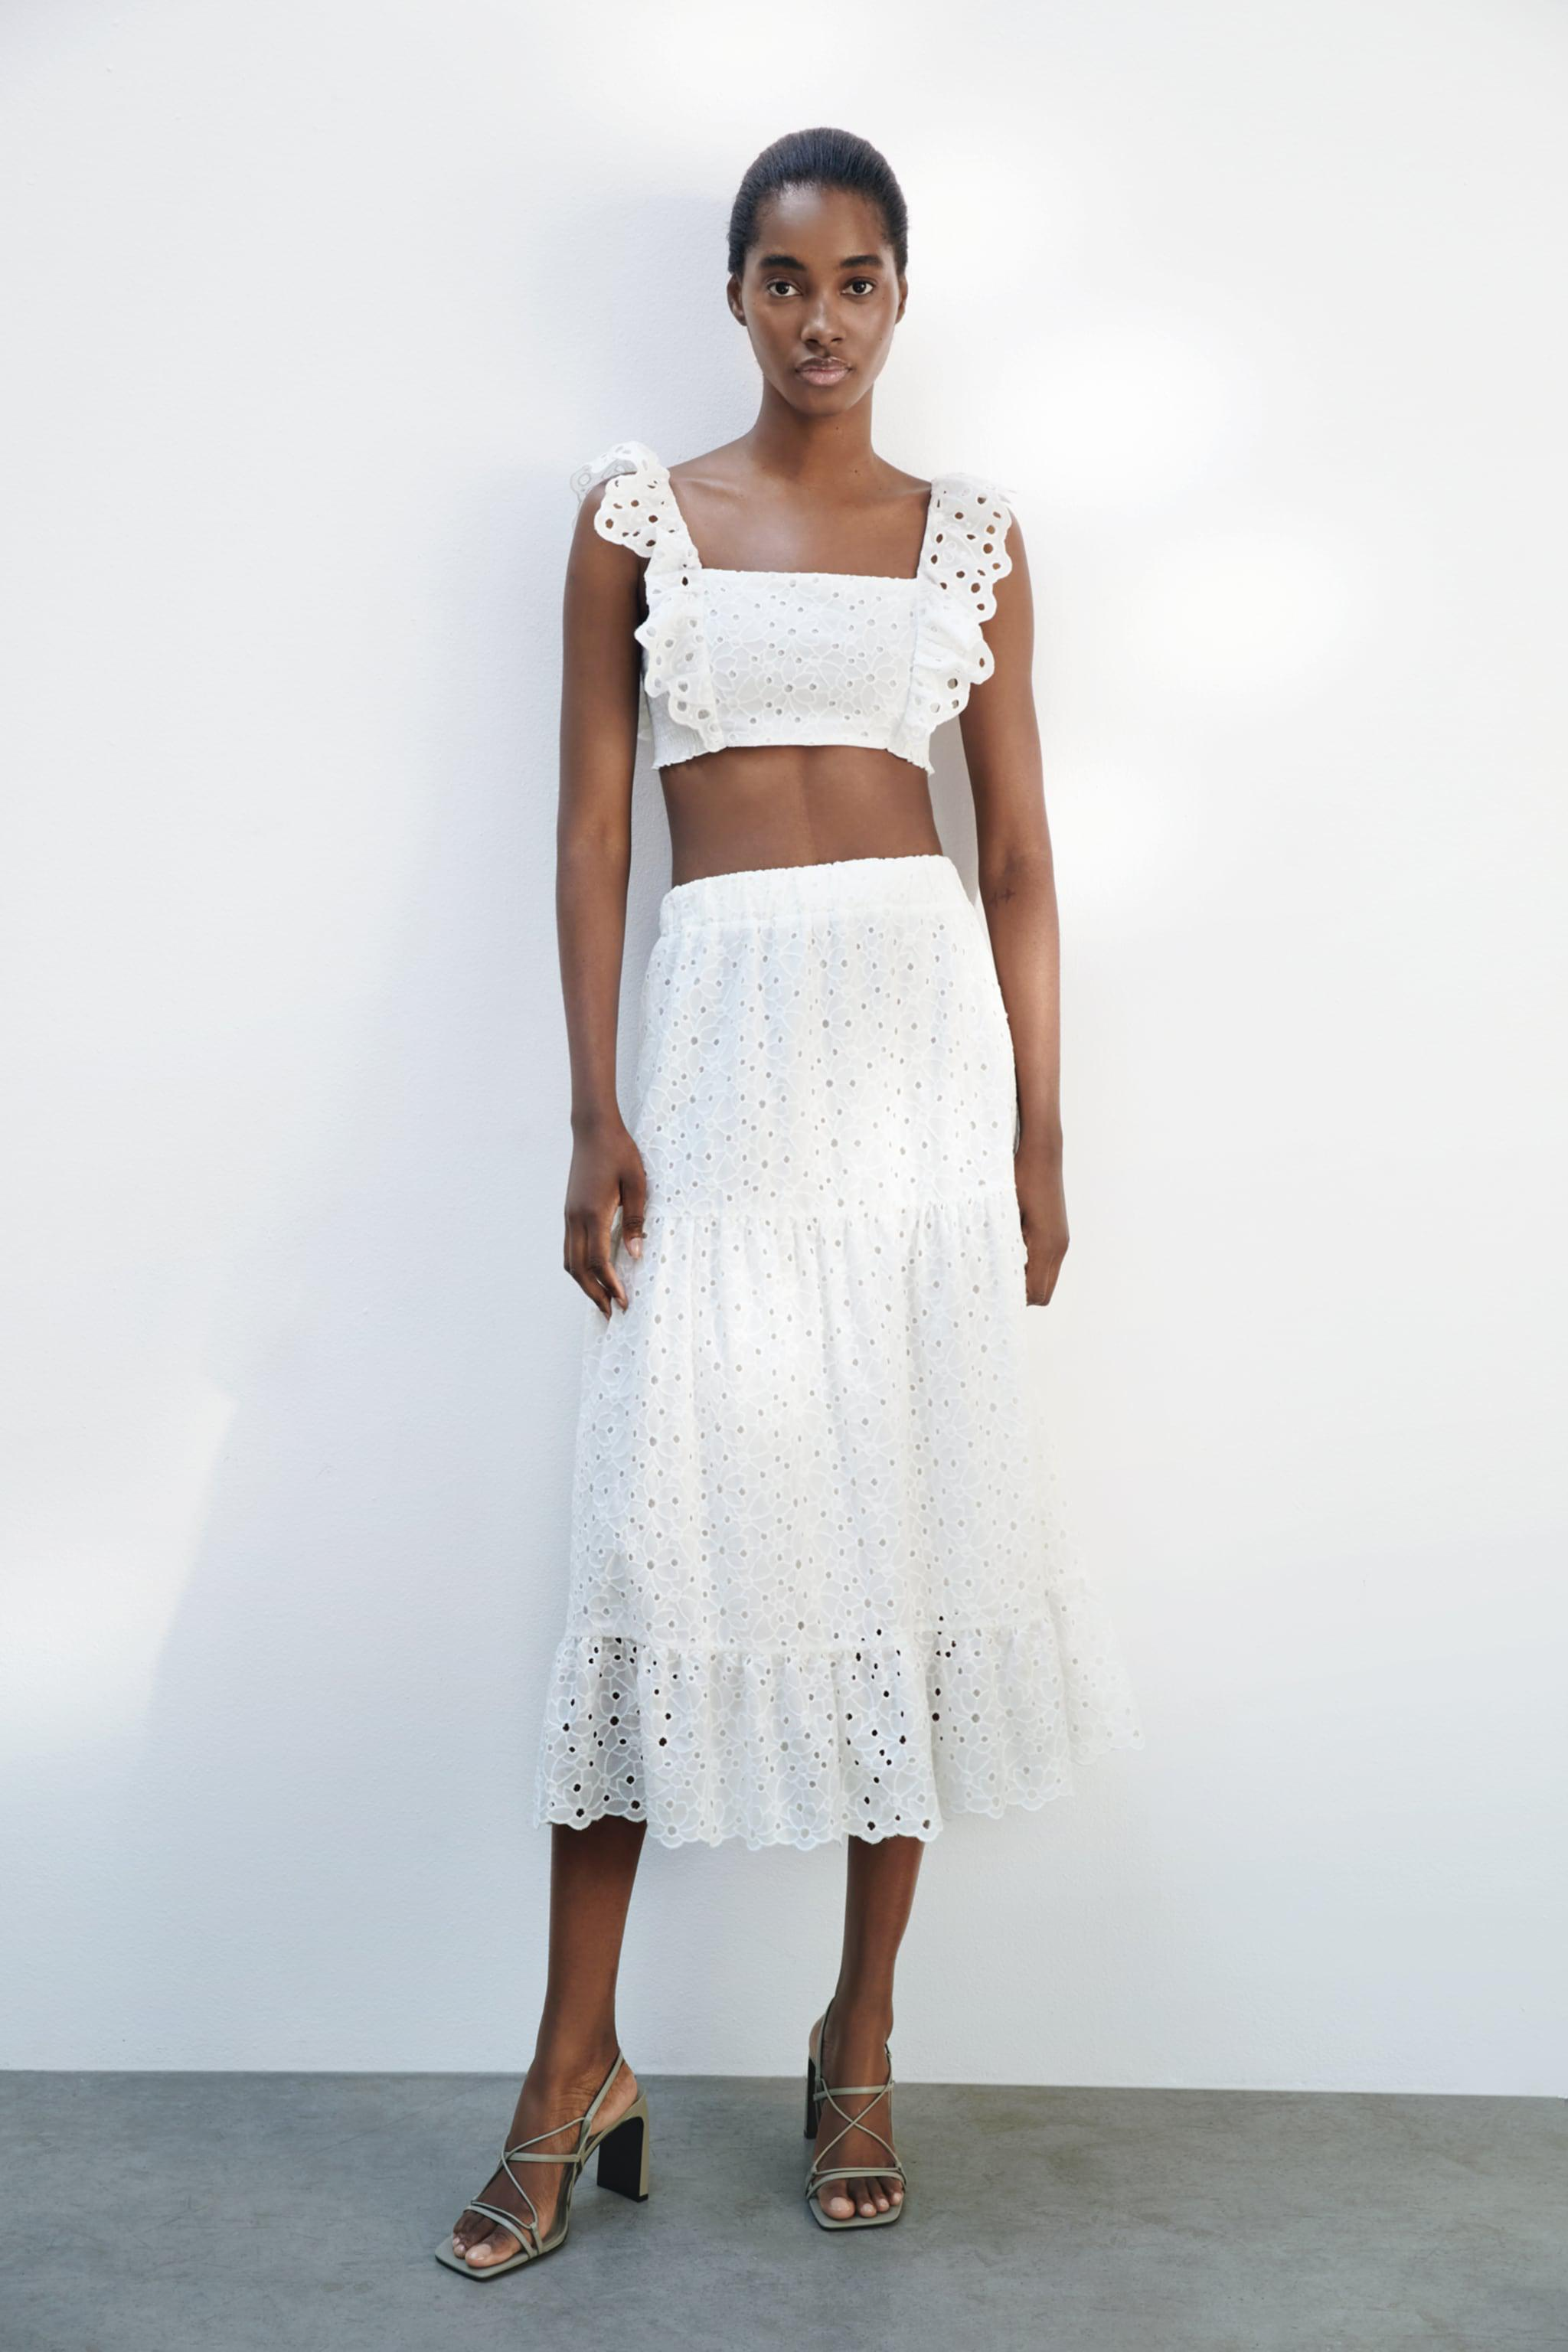 CROPPED TOP WITH OPENWORK EMBROIDERY